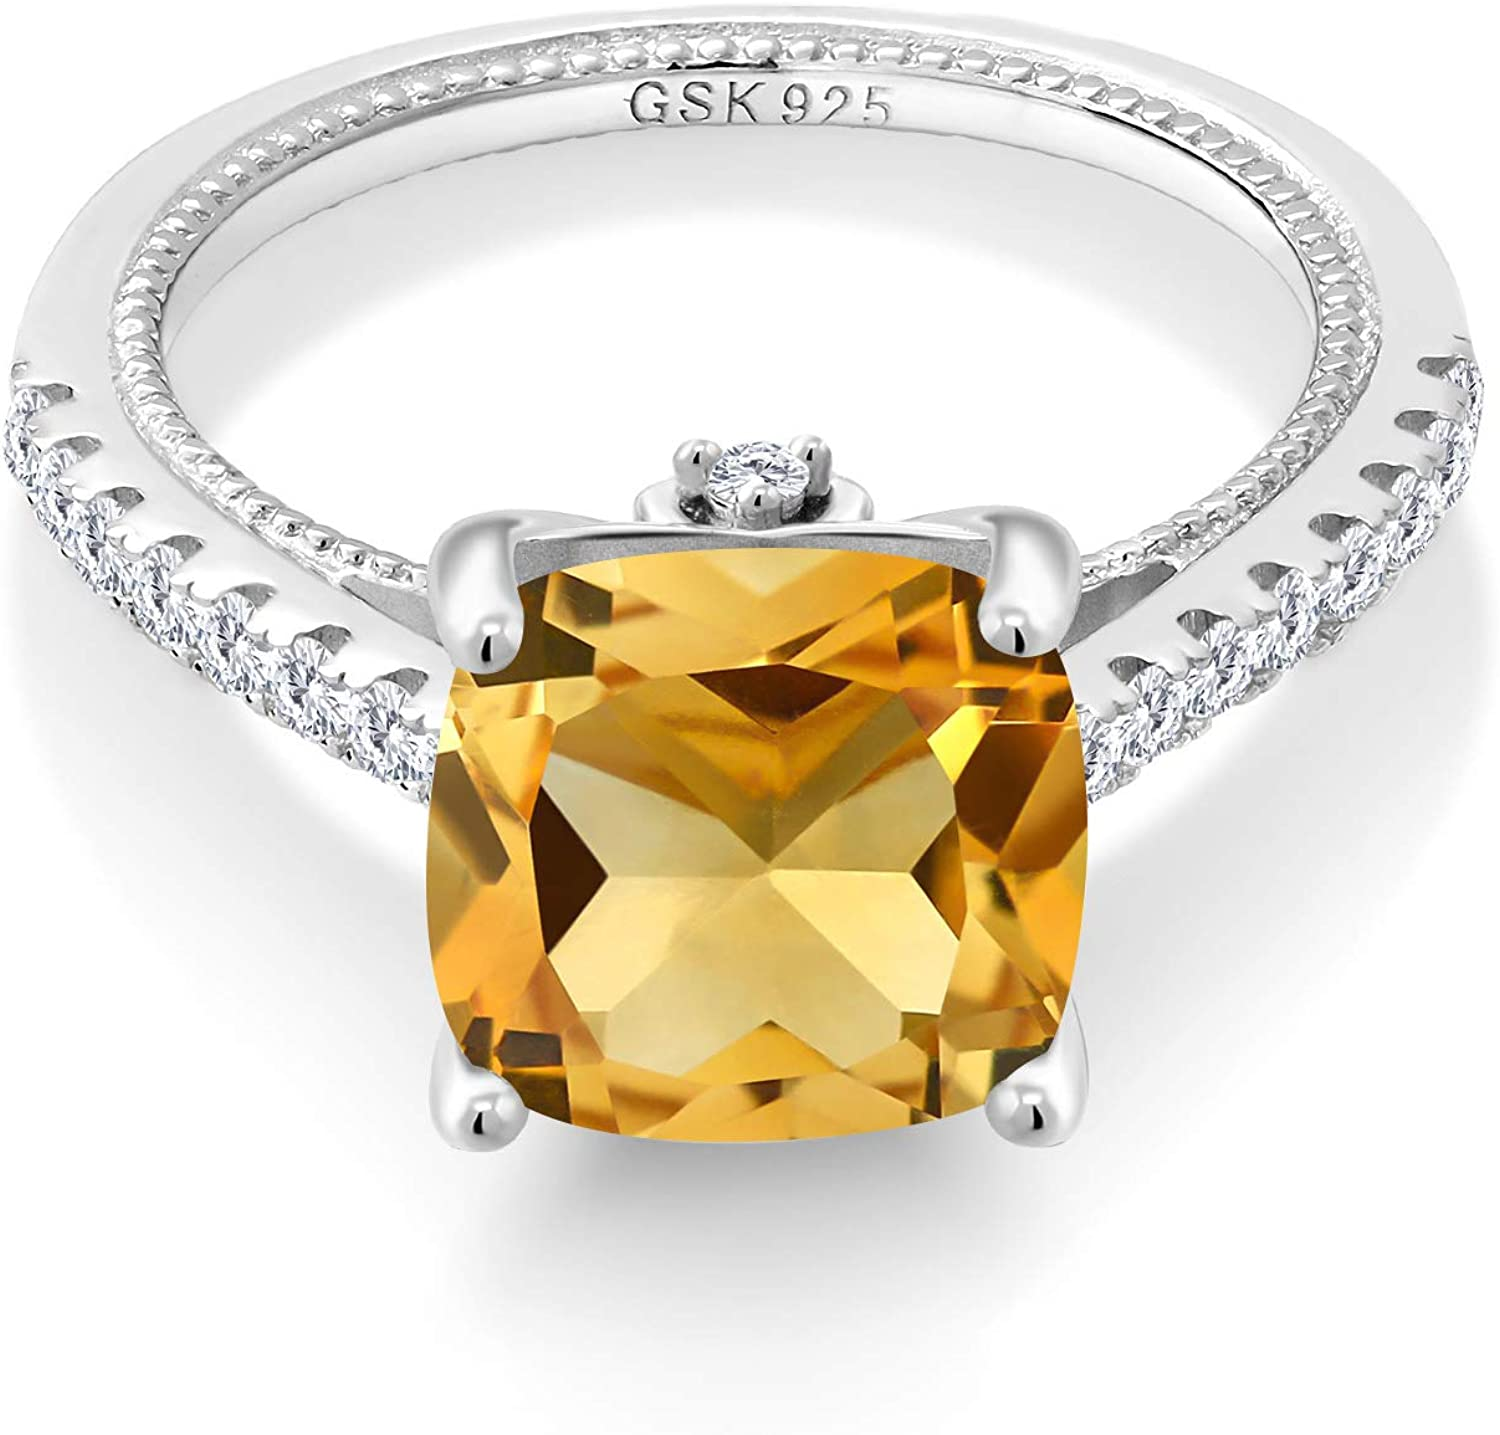 Gem Stone King 925 Sterling SALENEW very popular Silver and Crea Special sale item White Yellow Citrine